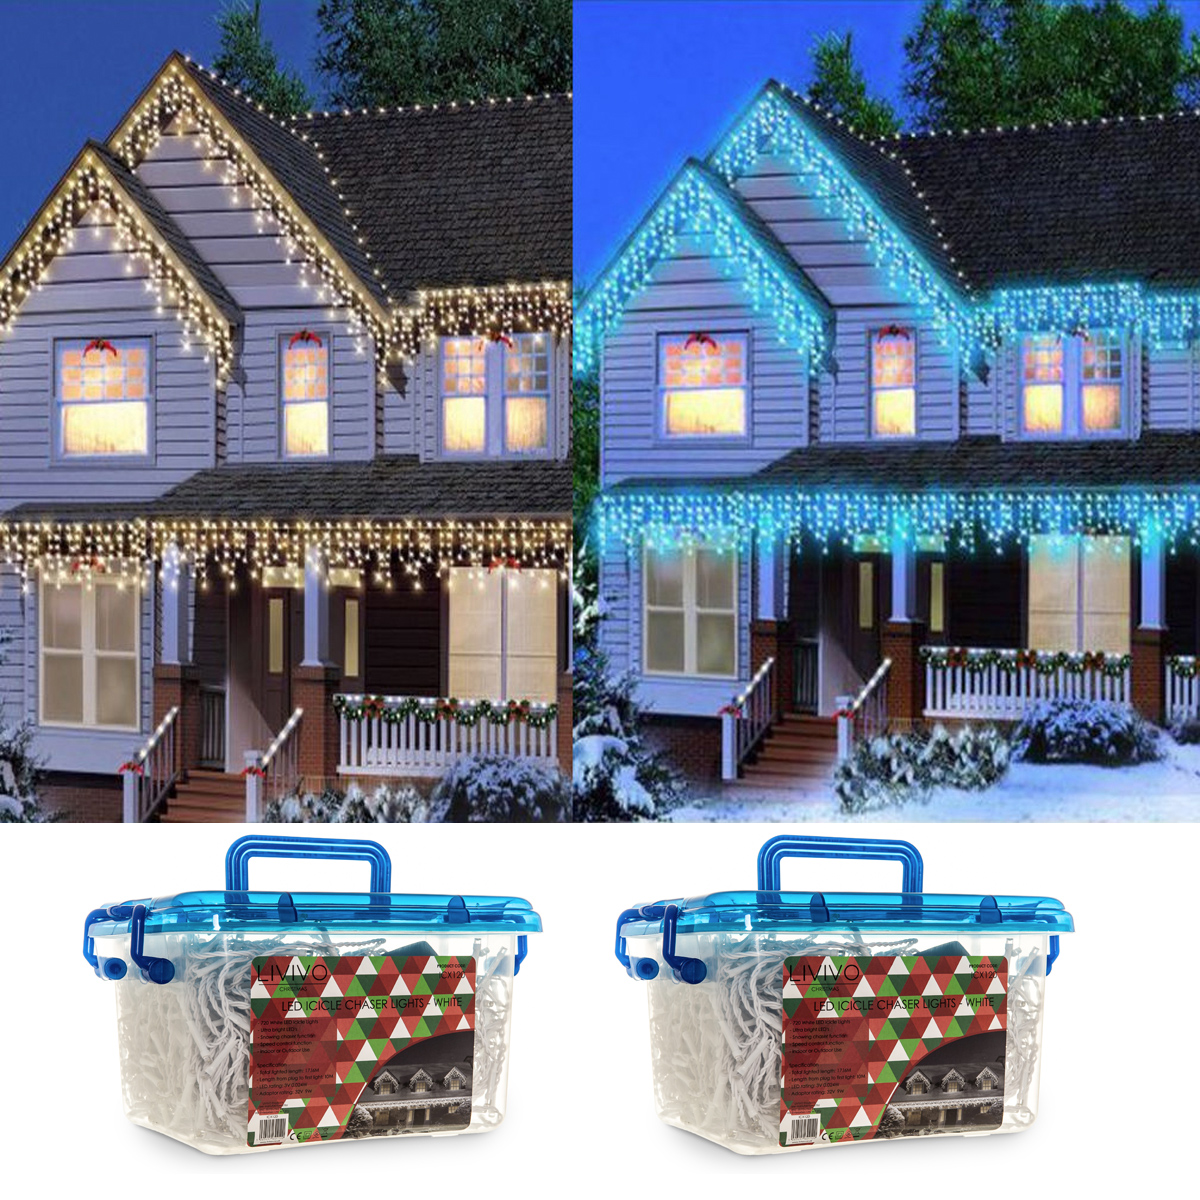 Snowing Christmas Lights.Details About Christmas 480 720 960 1200 Led Icicle Snowing Xmas Chaser Lights Outdoor In Tub